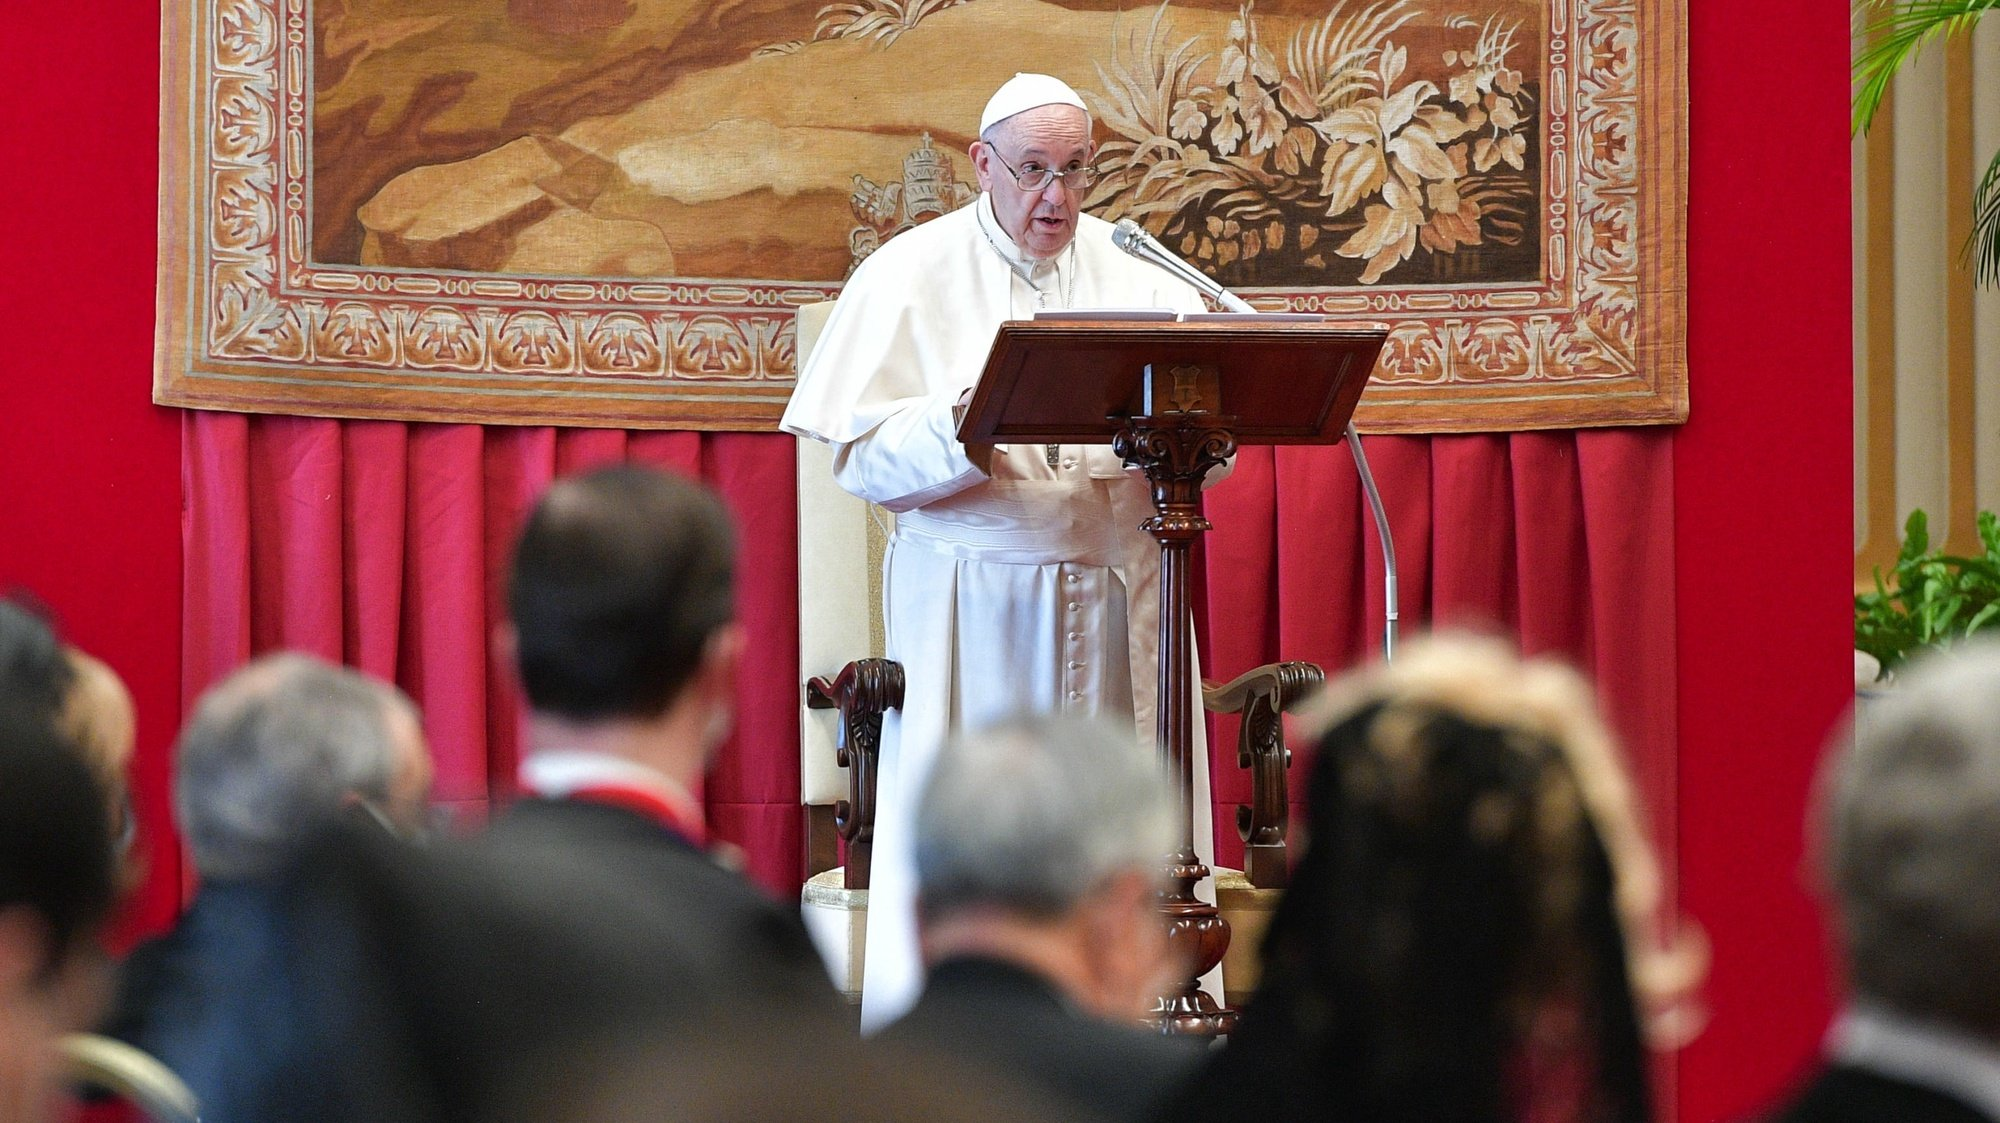 epa08995984 A handout picture provided by the Vatican Media shows Pope Francis during an audience to the Diplomatic Corps accredited to the Holy See, at the Vatican, 08 February 2021.  EPA/VATICAN MEDIA HANDOUT  HANDOUT EDITORIAL USE ONLY/NO SALES